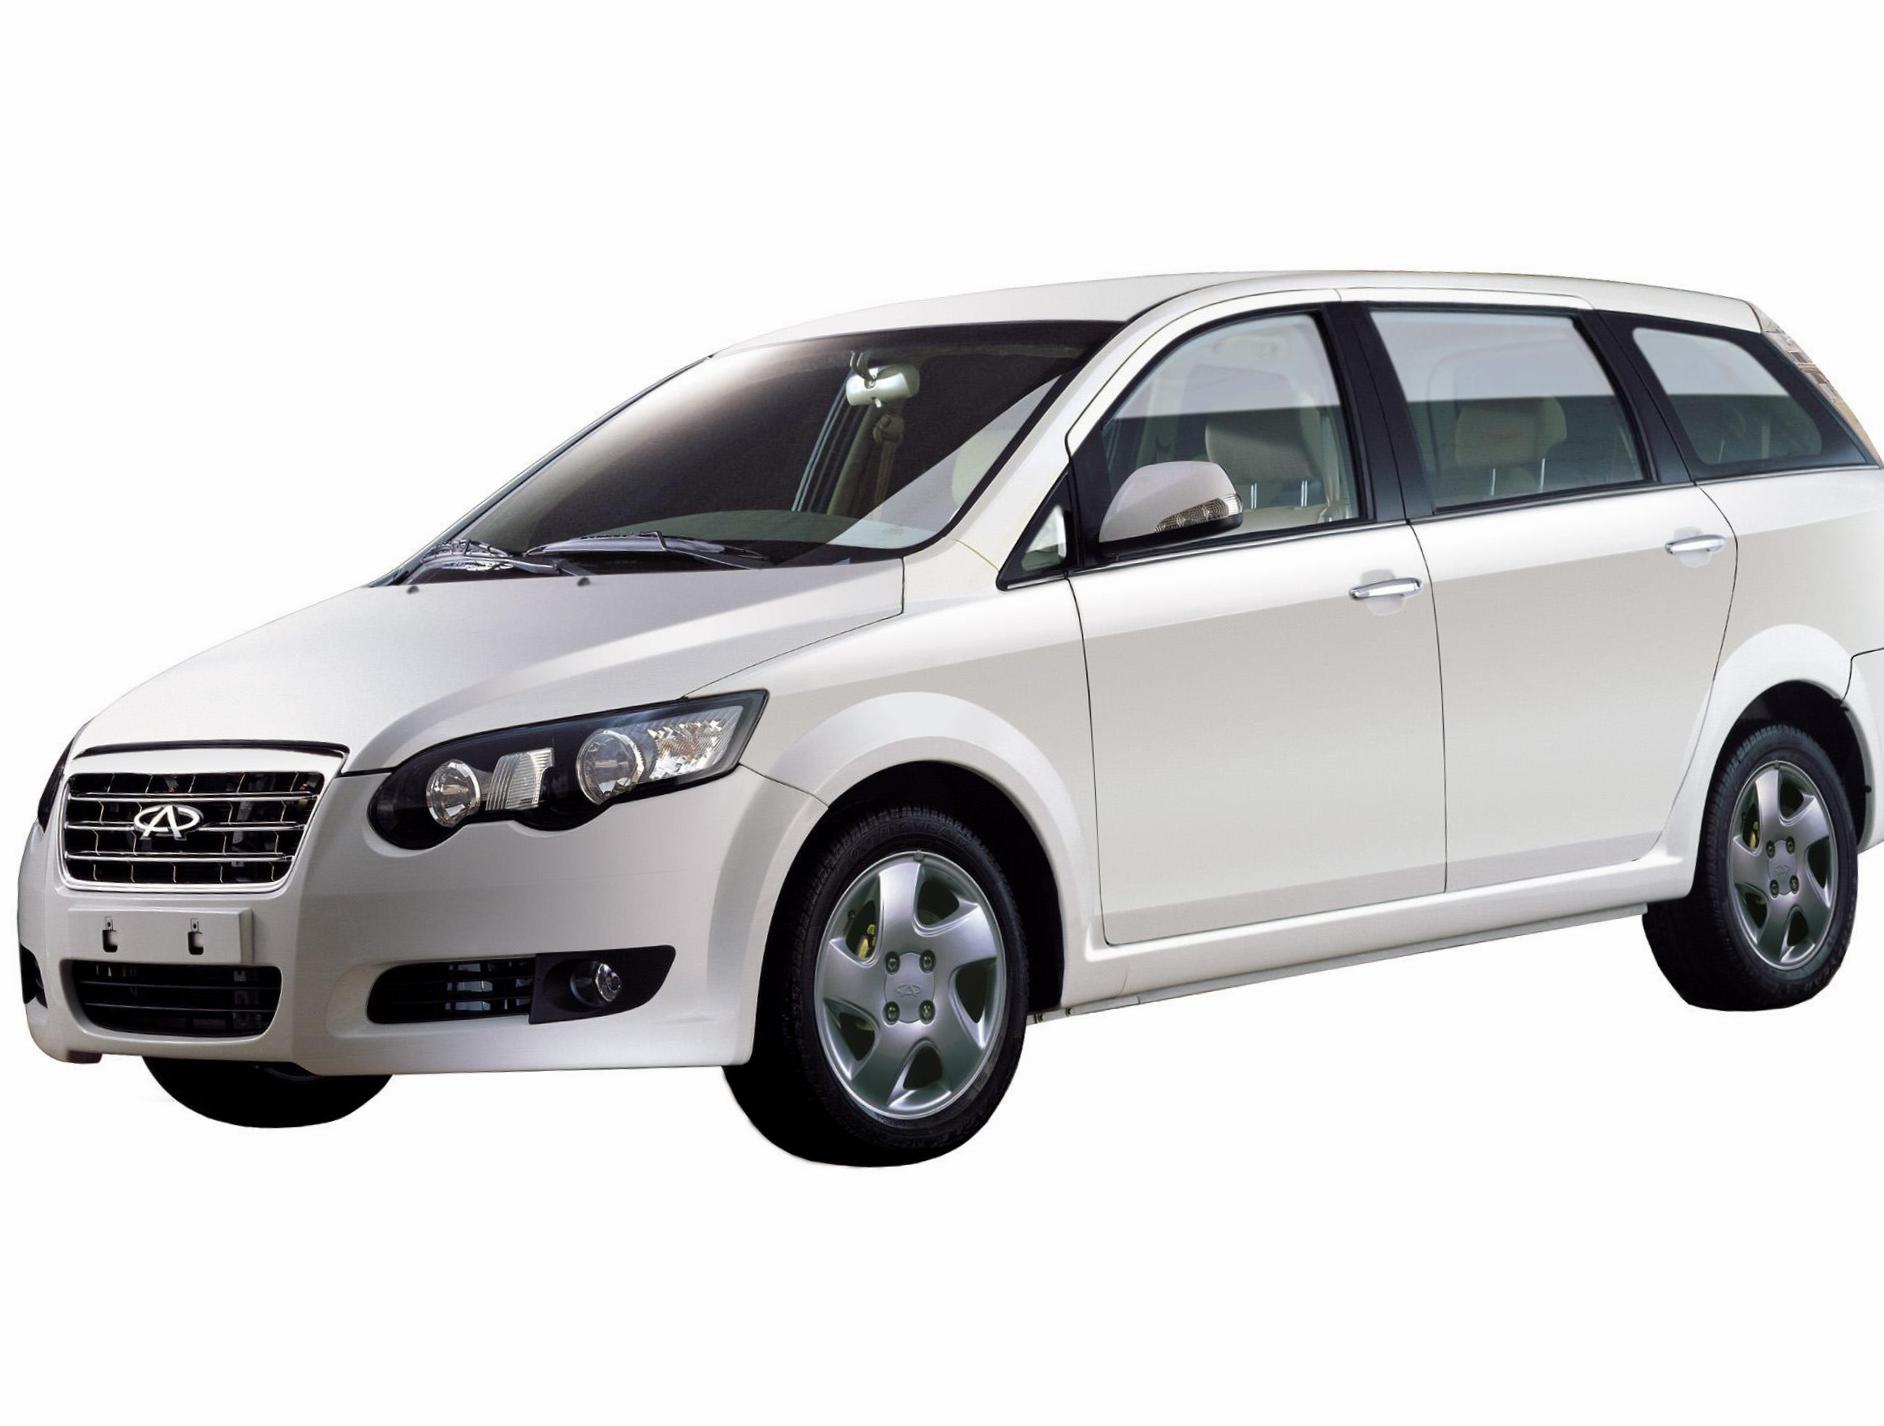 CrossEastar (B14) Chery review 2013